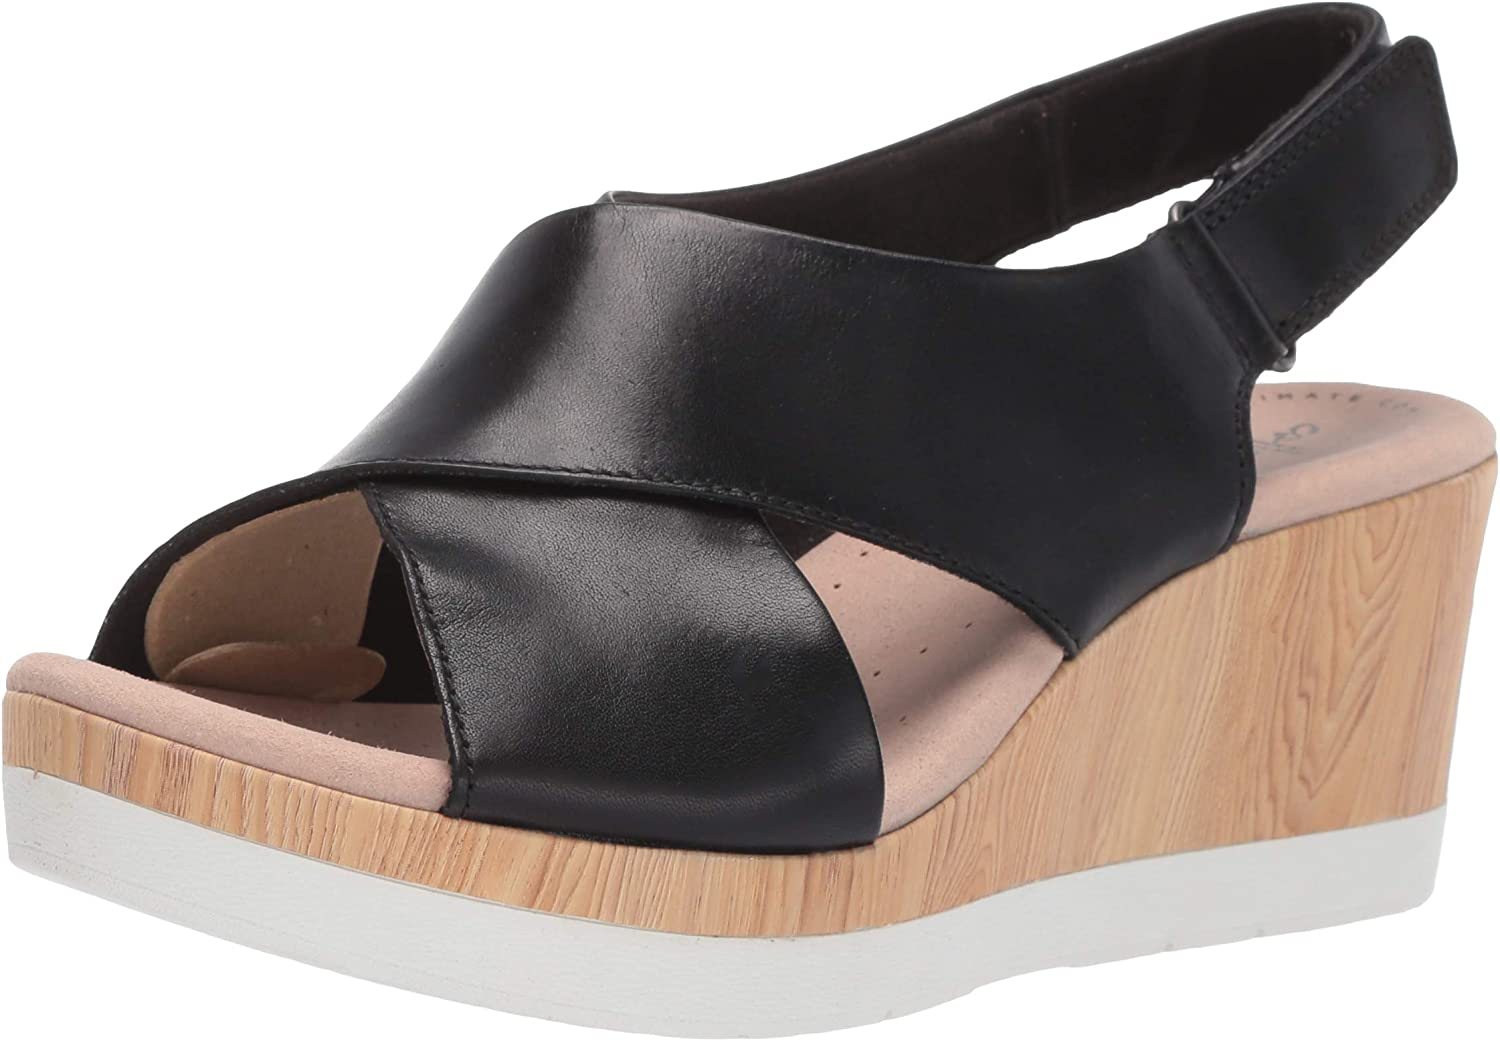 Clarks Womens Cammy Pearl Platform & Wedge Sandals